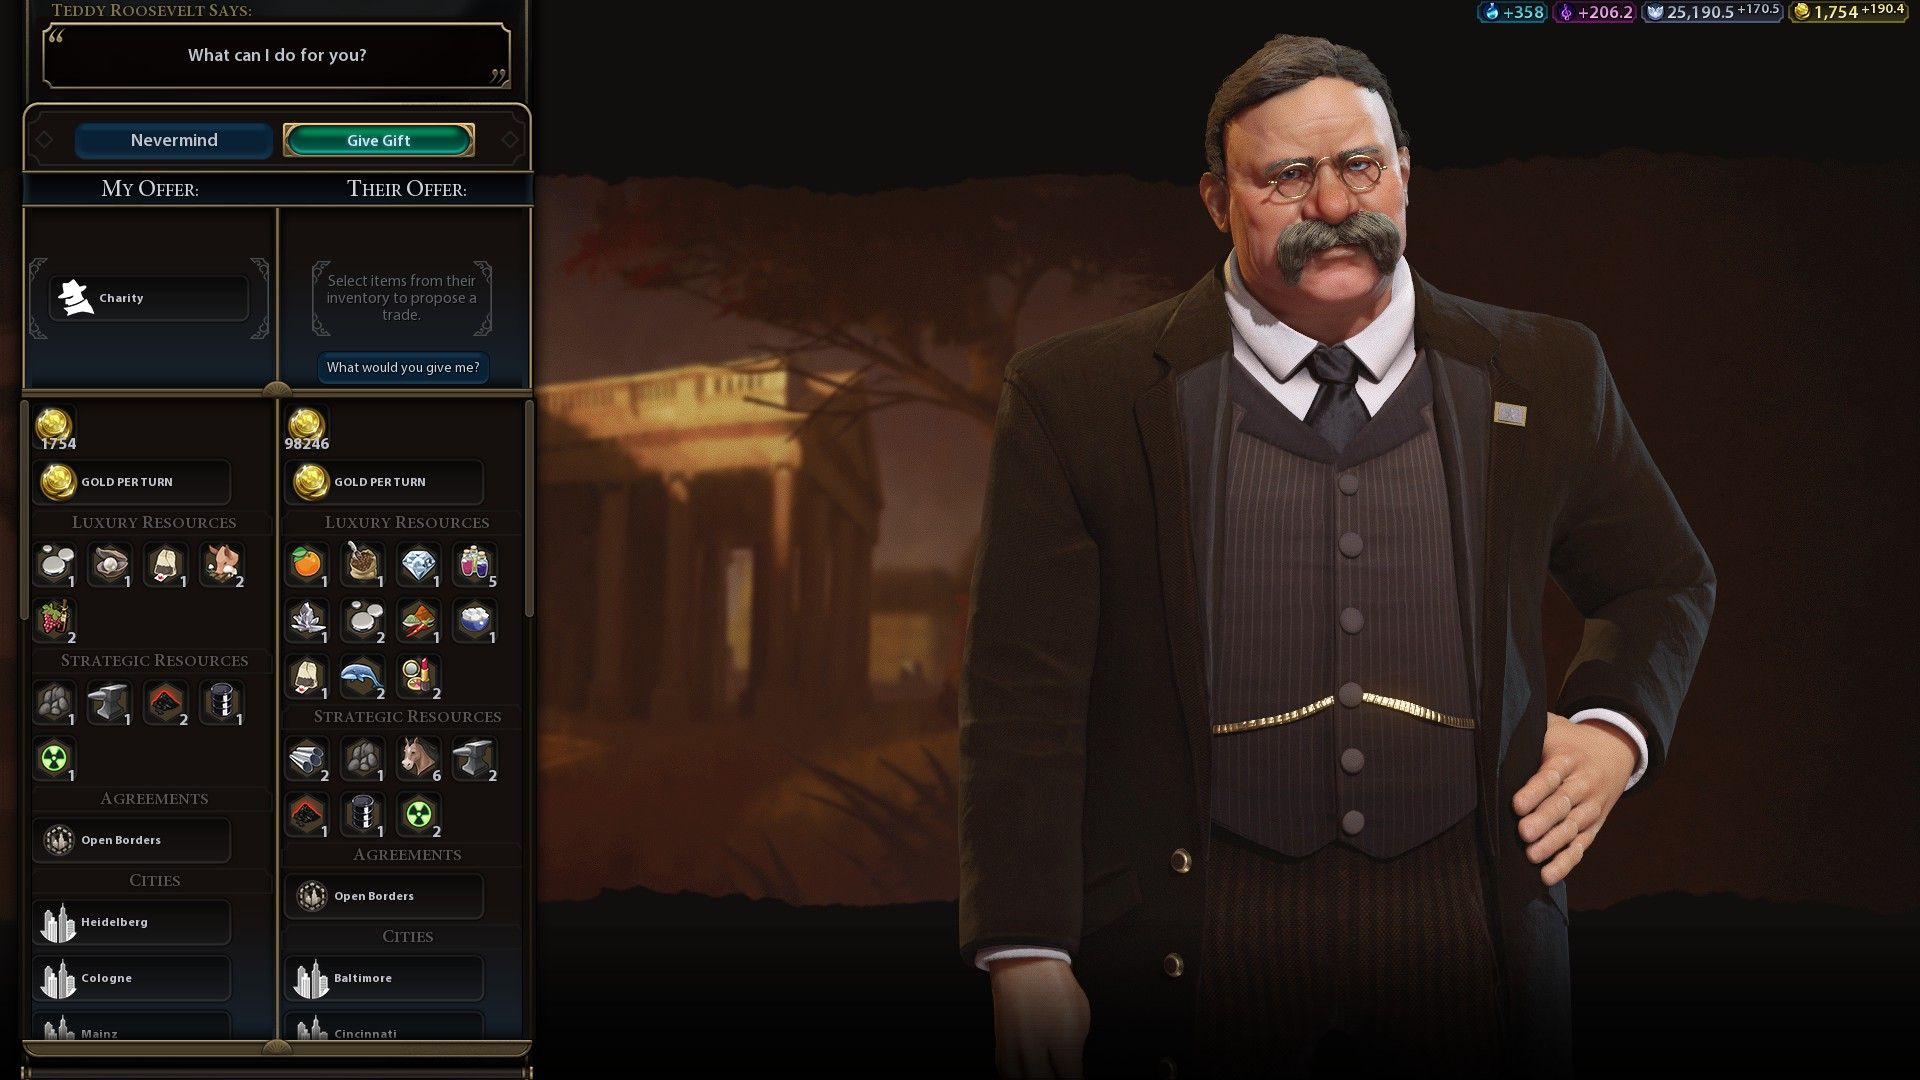 Can anyone explain how/why Teddy went from <1000 gold to over 90k in 5-10 turns? #CivilizationBeyondEarth #gaming #Civilization #games #world #steam #SidMeier #RTS